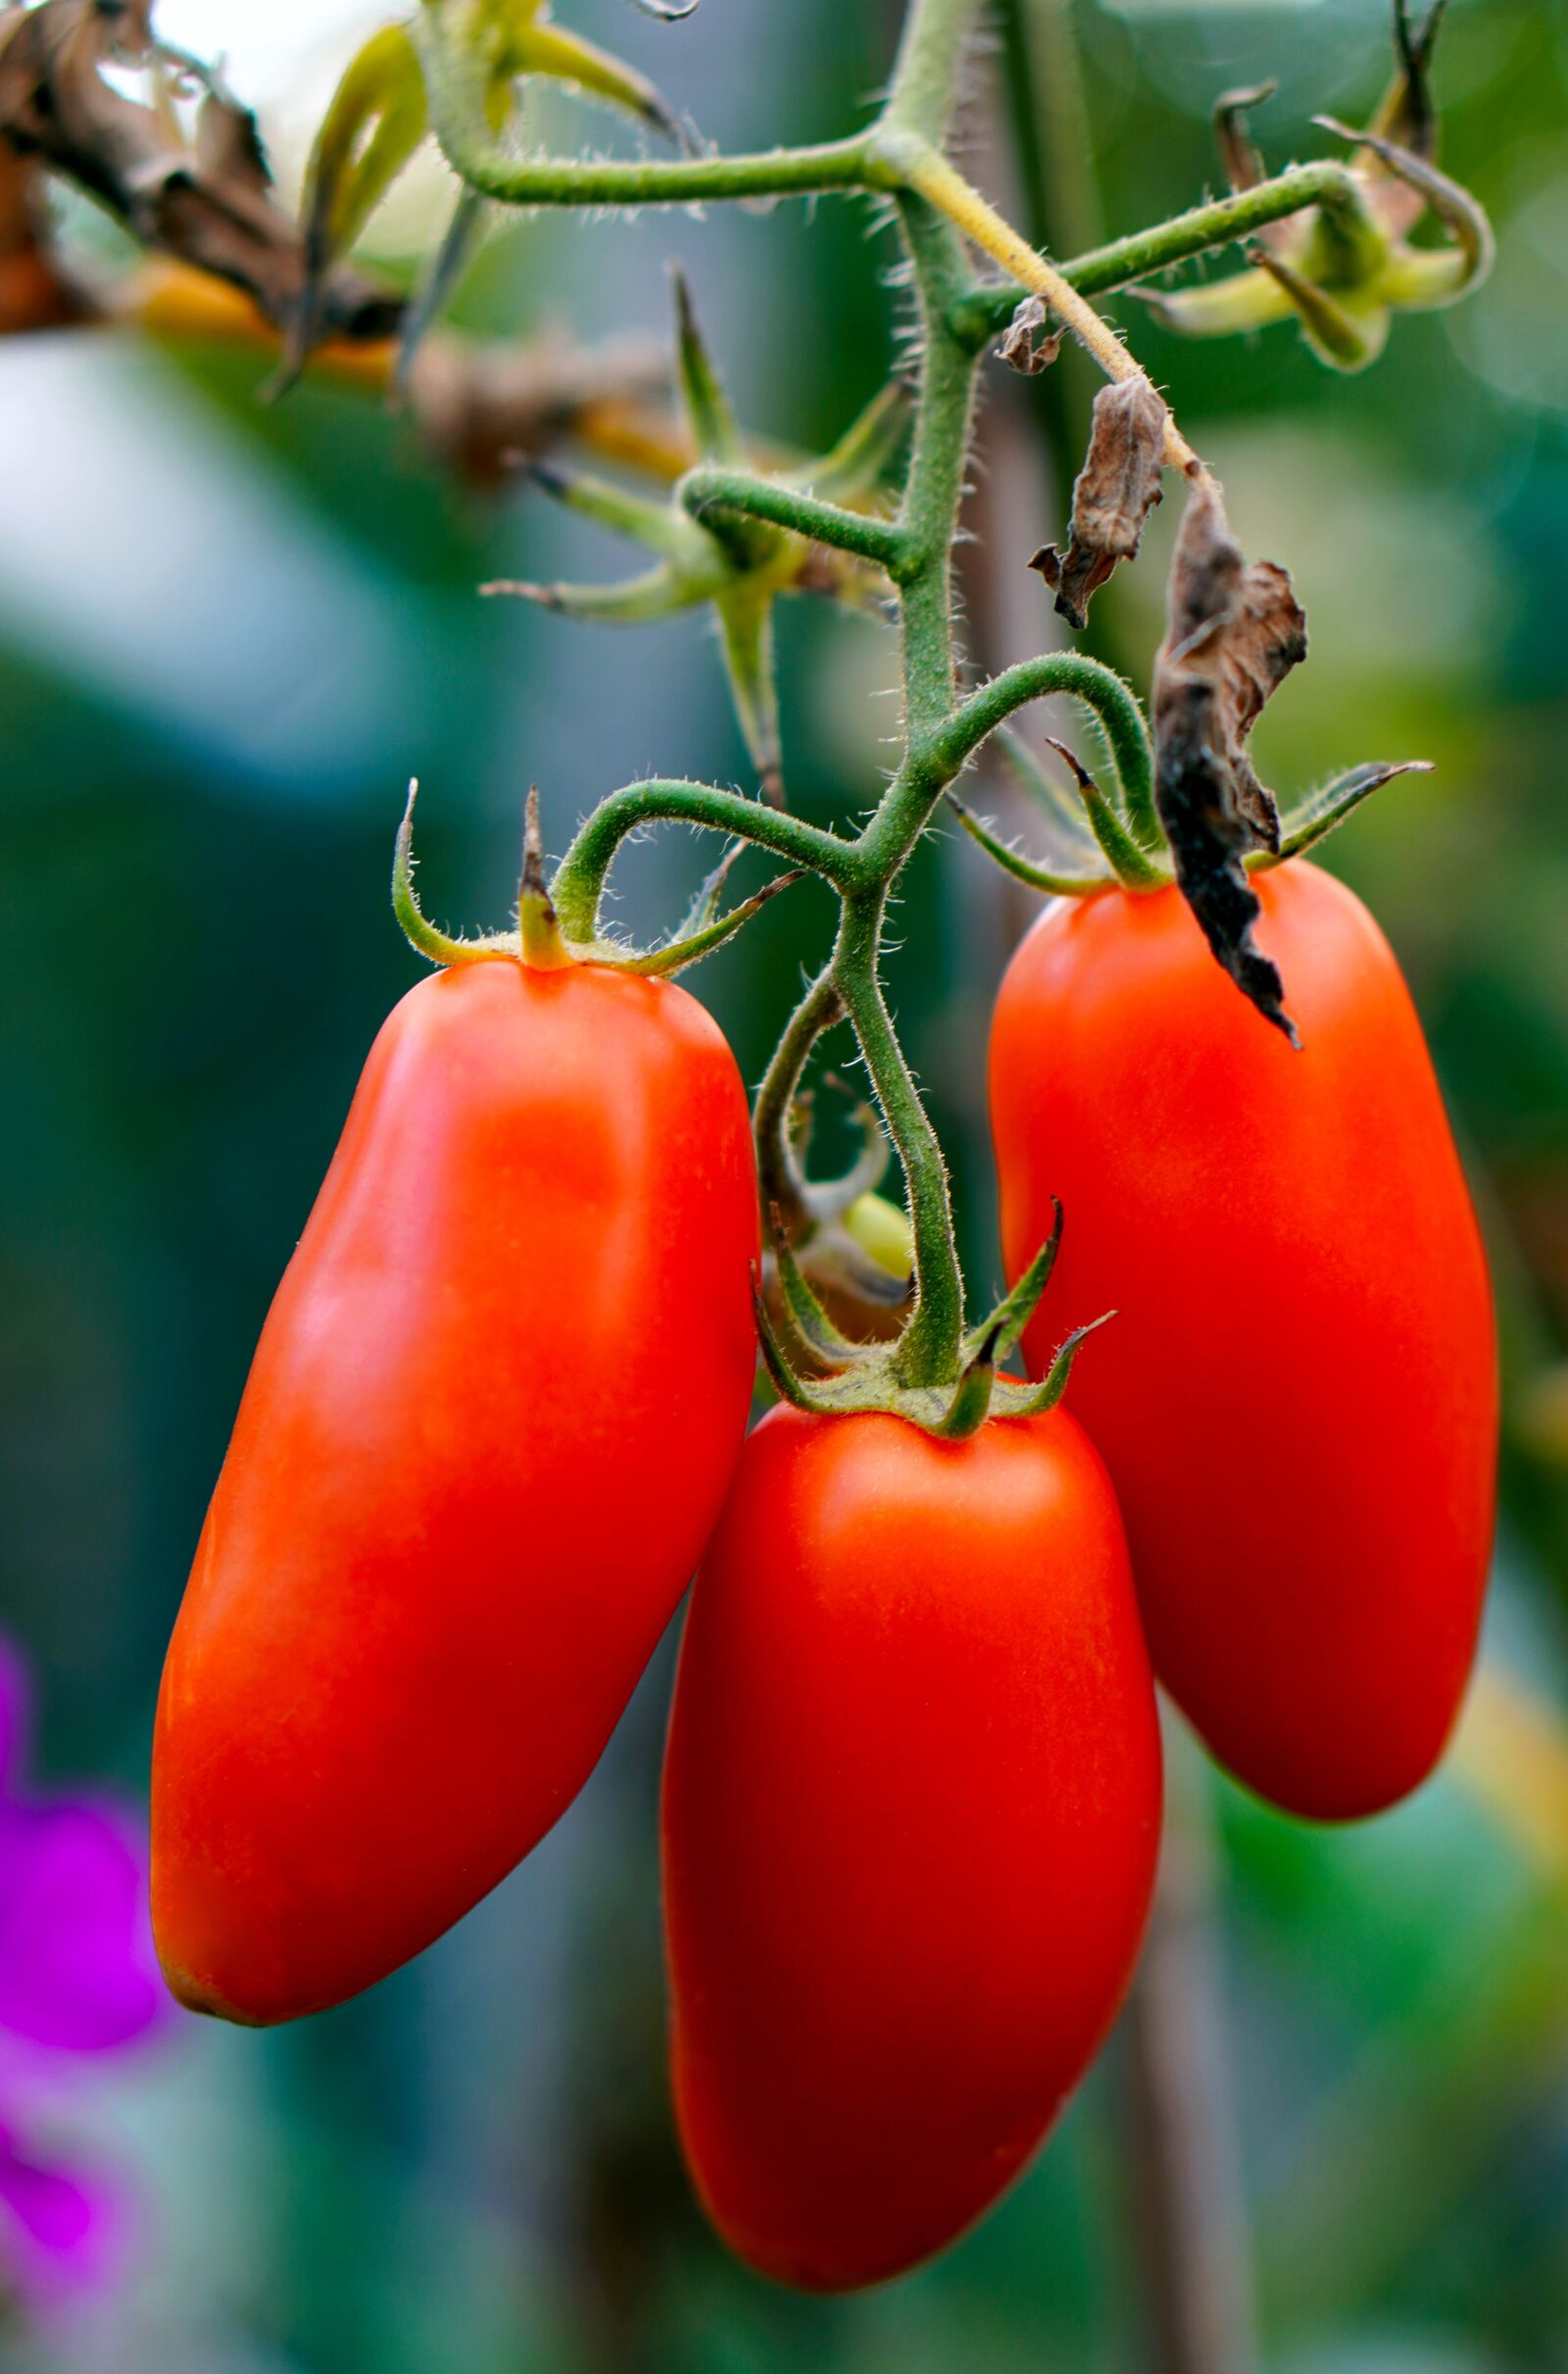 """Sony a6400 sample photo. """"Tomatoes, ripe, red"""" photography"""